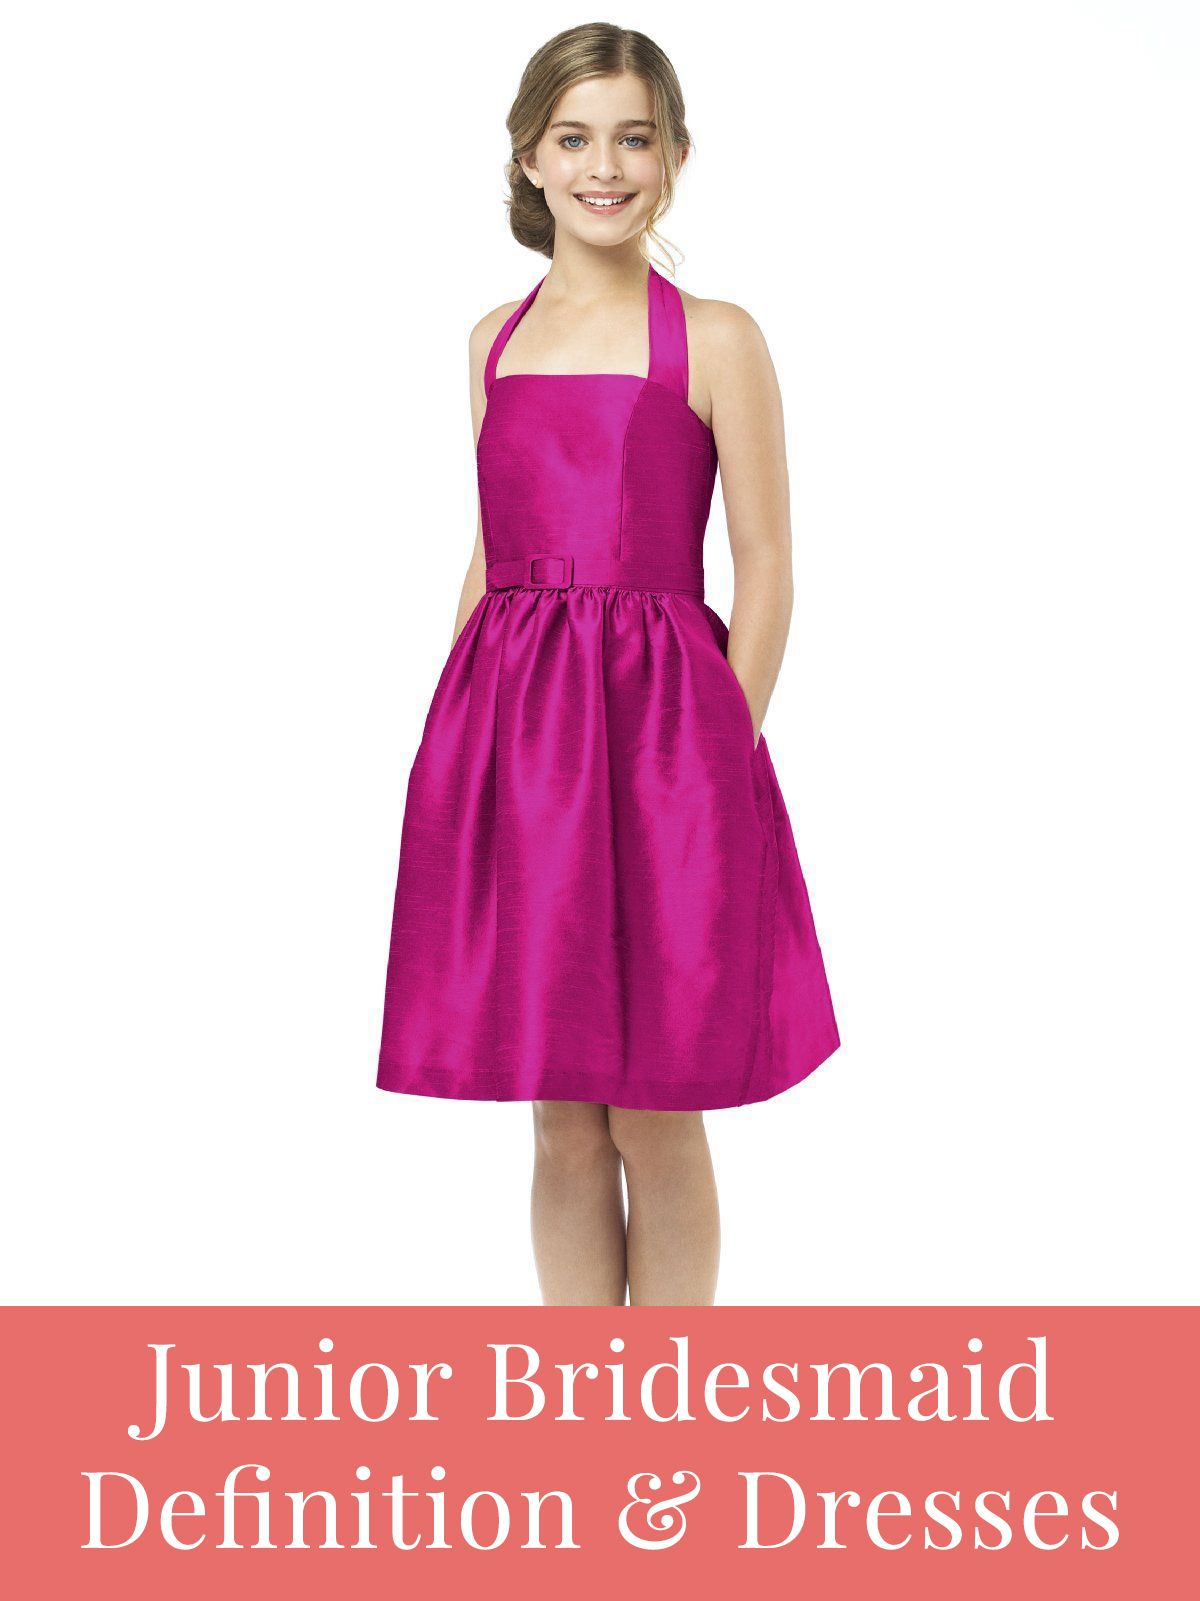 What is a Junior Bridesmaid?